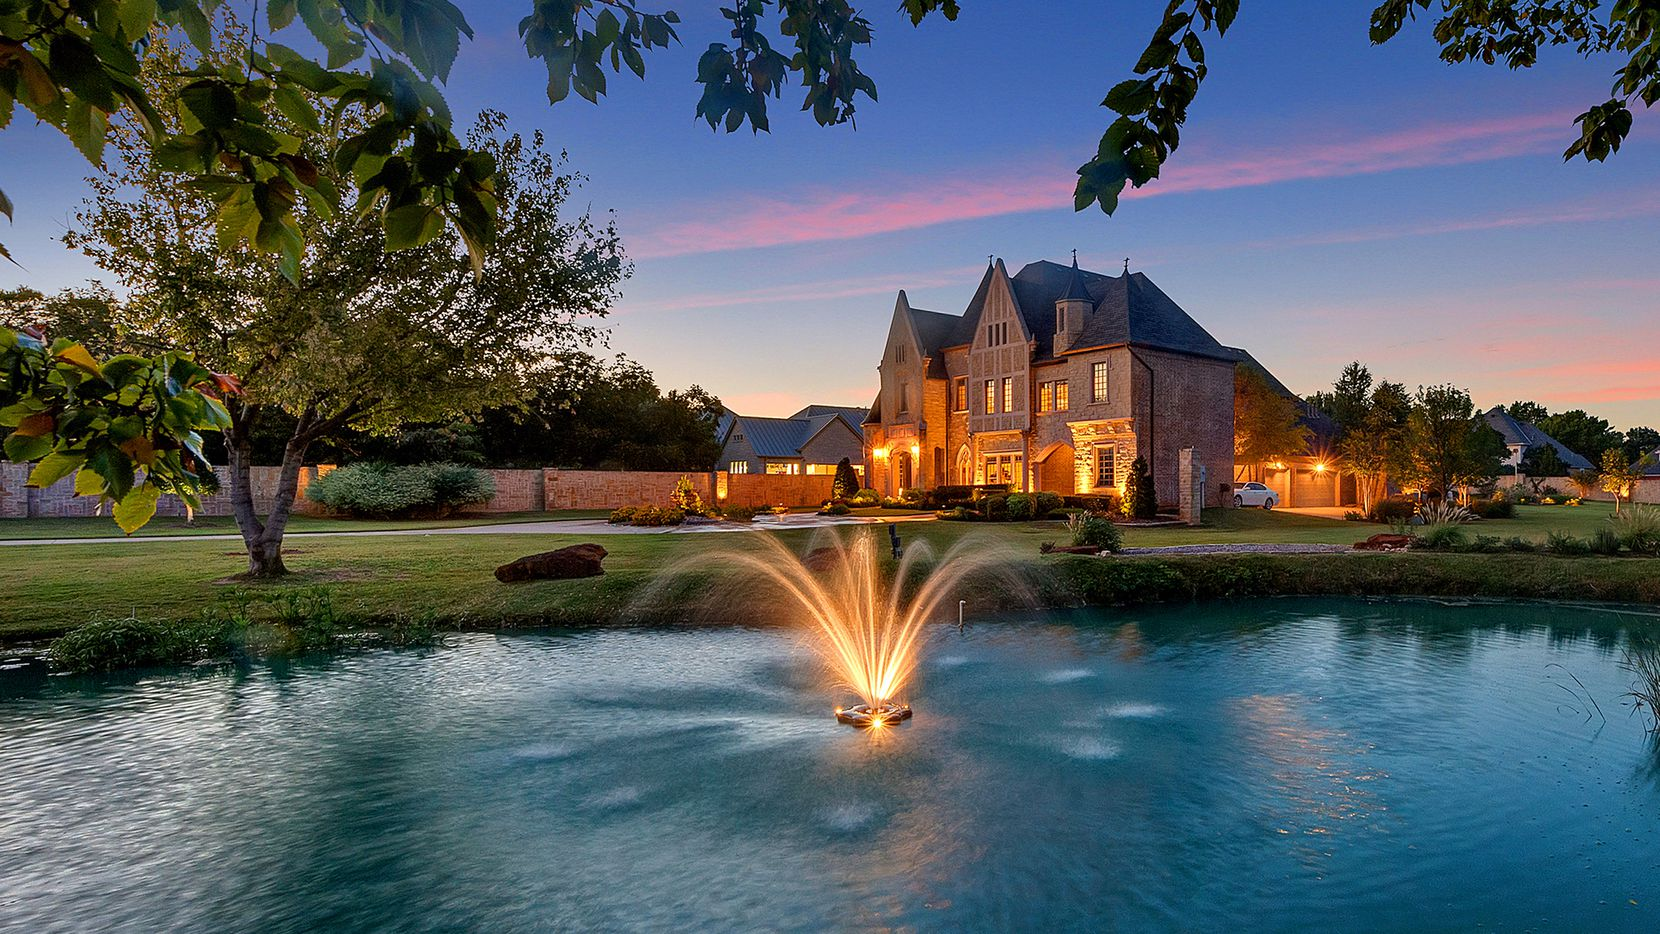 Bidding for the 7,216-square-foot estate at 2404 Glade Road in Colleyville will be held Nov. 12 to 15. It will auction with a reserve of $1.9 million in cooperation with Kimberly Holt of Ebby Halliday Realtors' Southlake office.